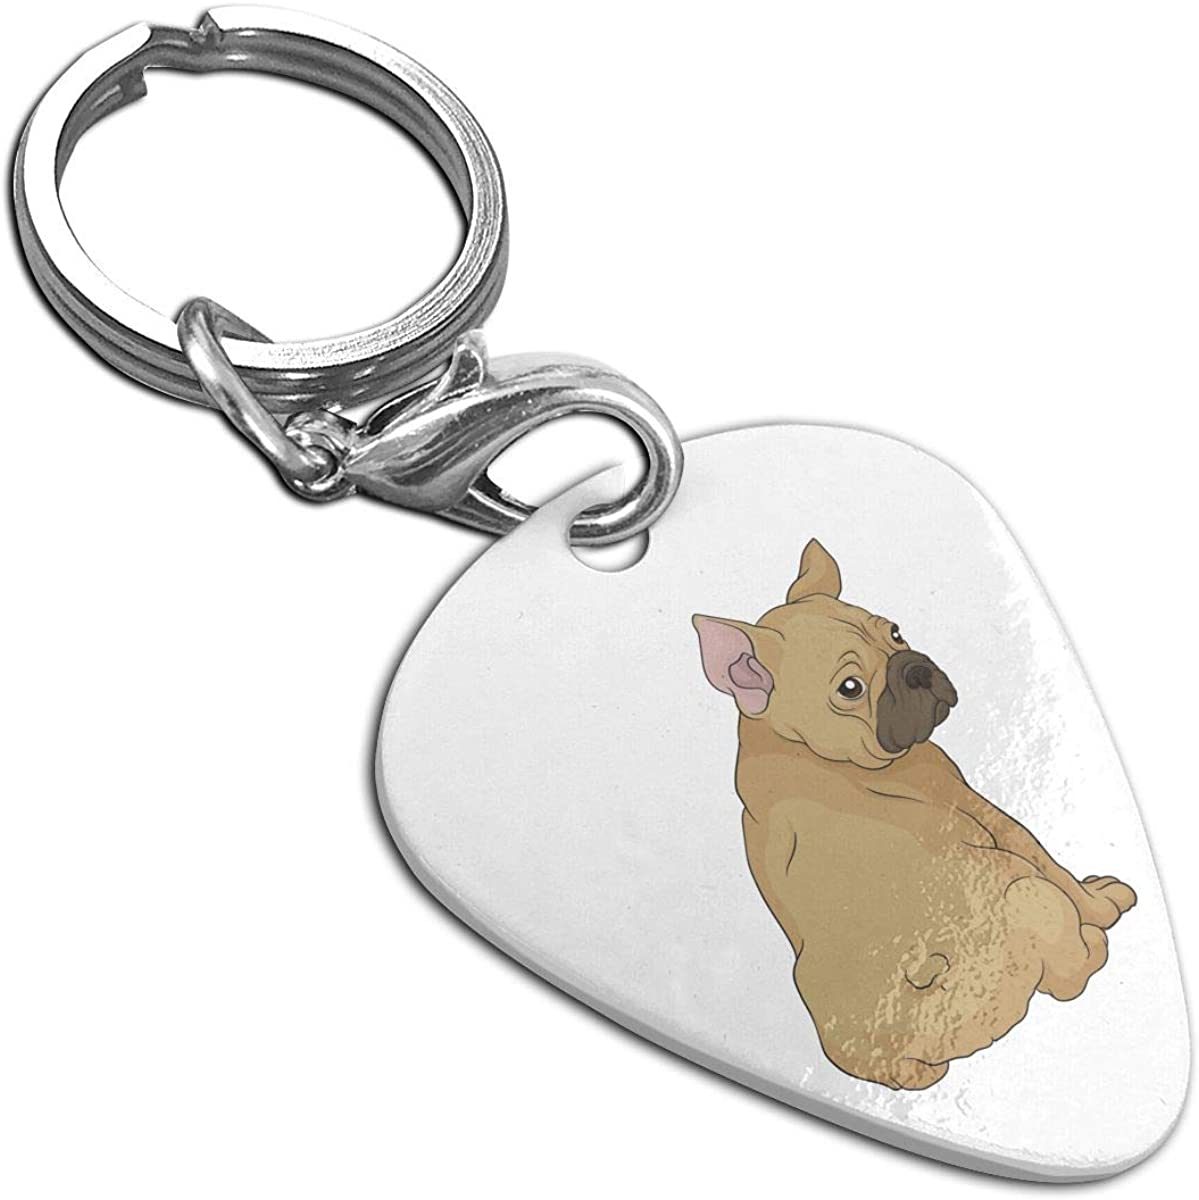 Cute Boston Terrier Butt Custom Guitar Pick Pendant Necklace Keychain